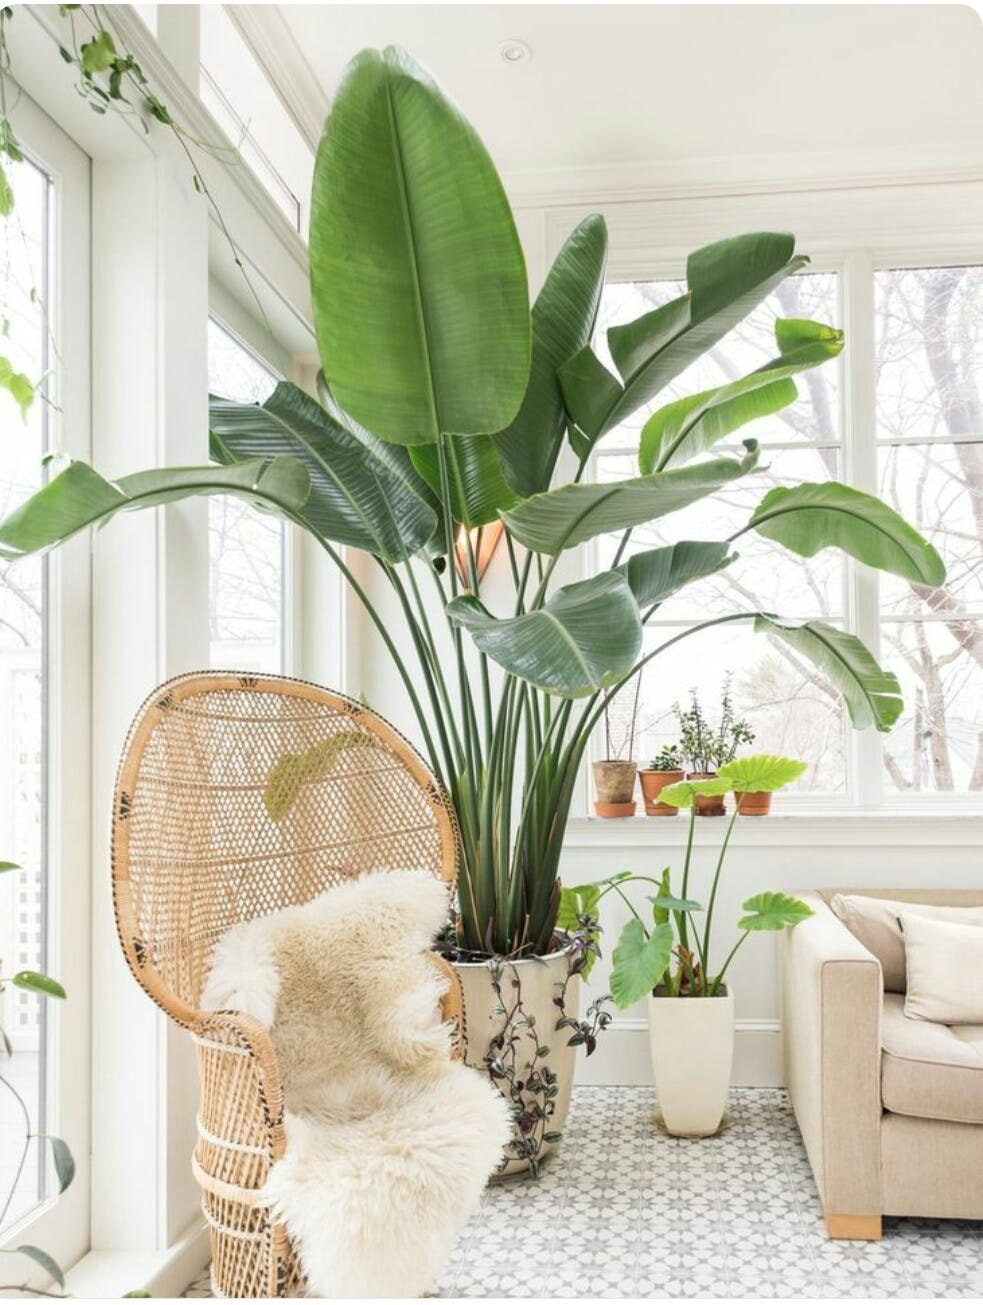 decora tu hogar con un toque tropical de tendencia luz On plantas salon decoracion